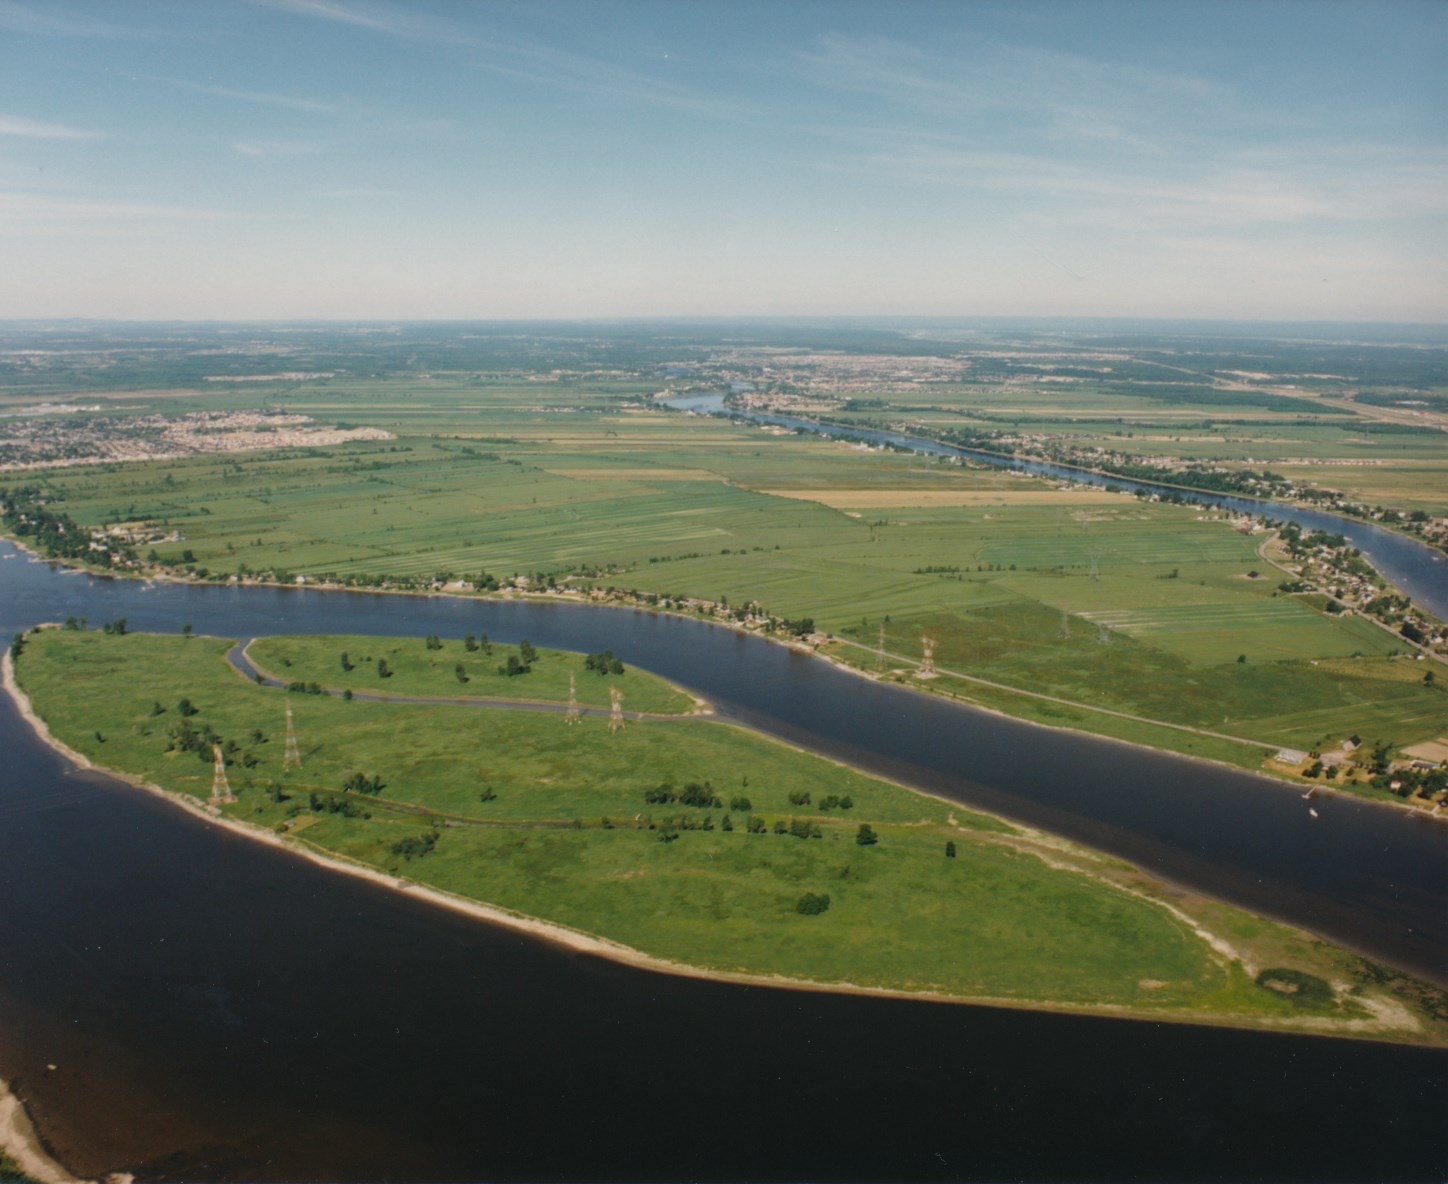 Colour aerial photograph of the Mitan archipelago surrounded by the Des Prairies River in summer. The islands are a lush green.